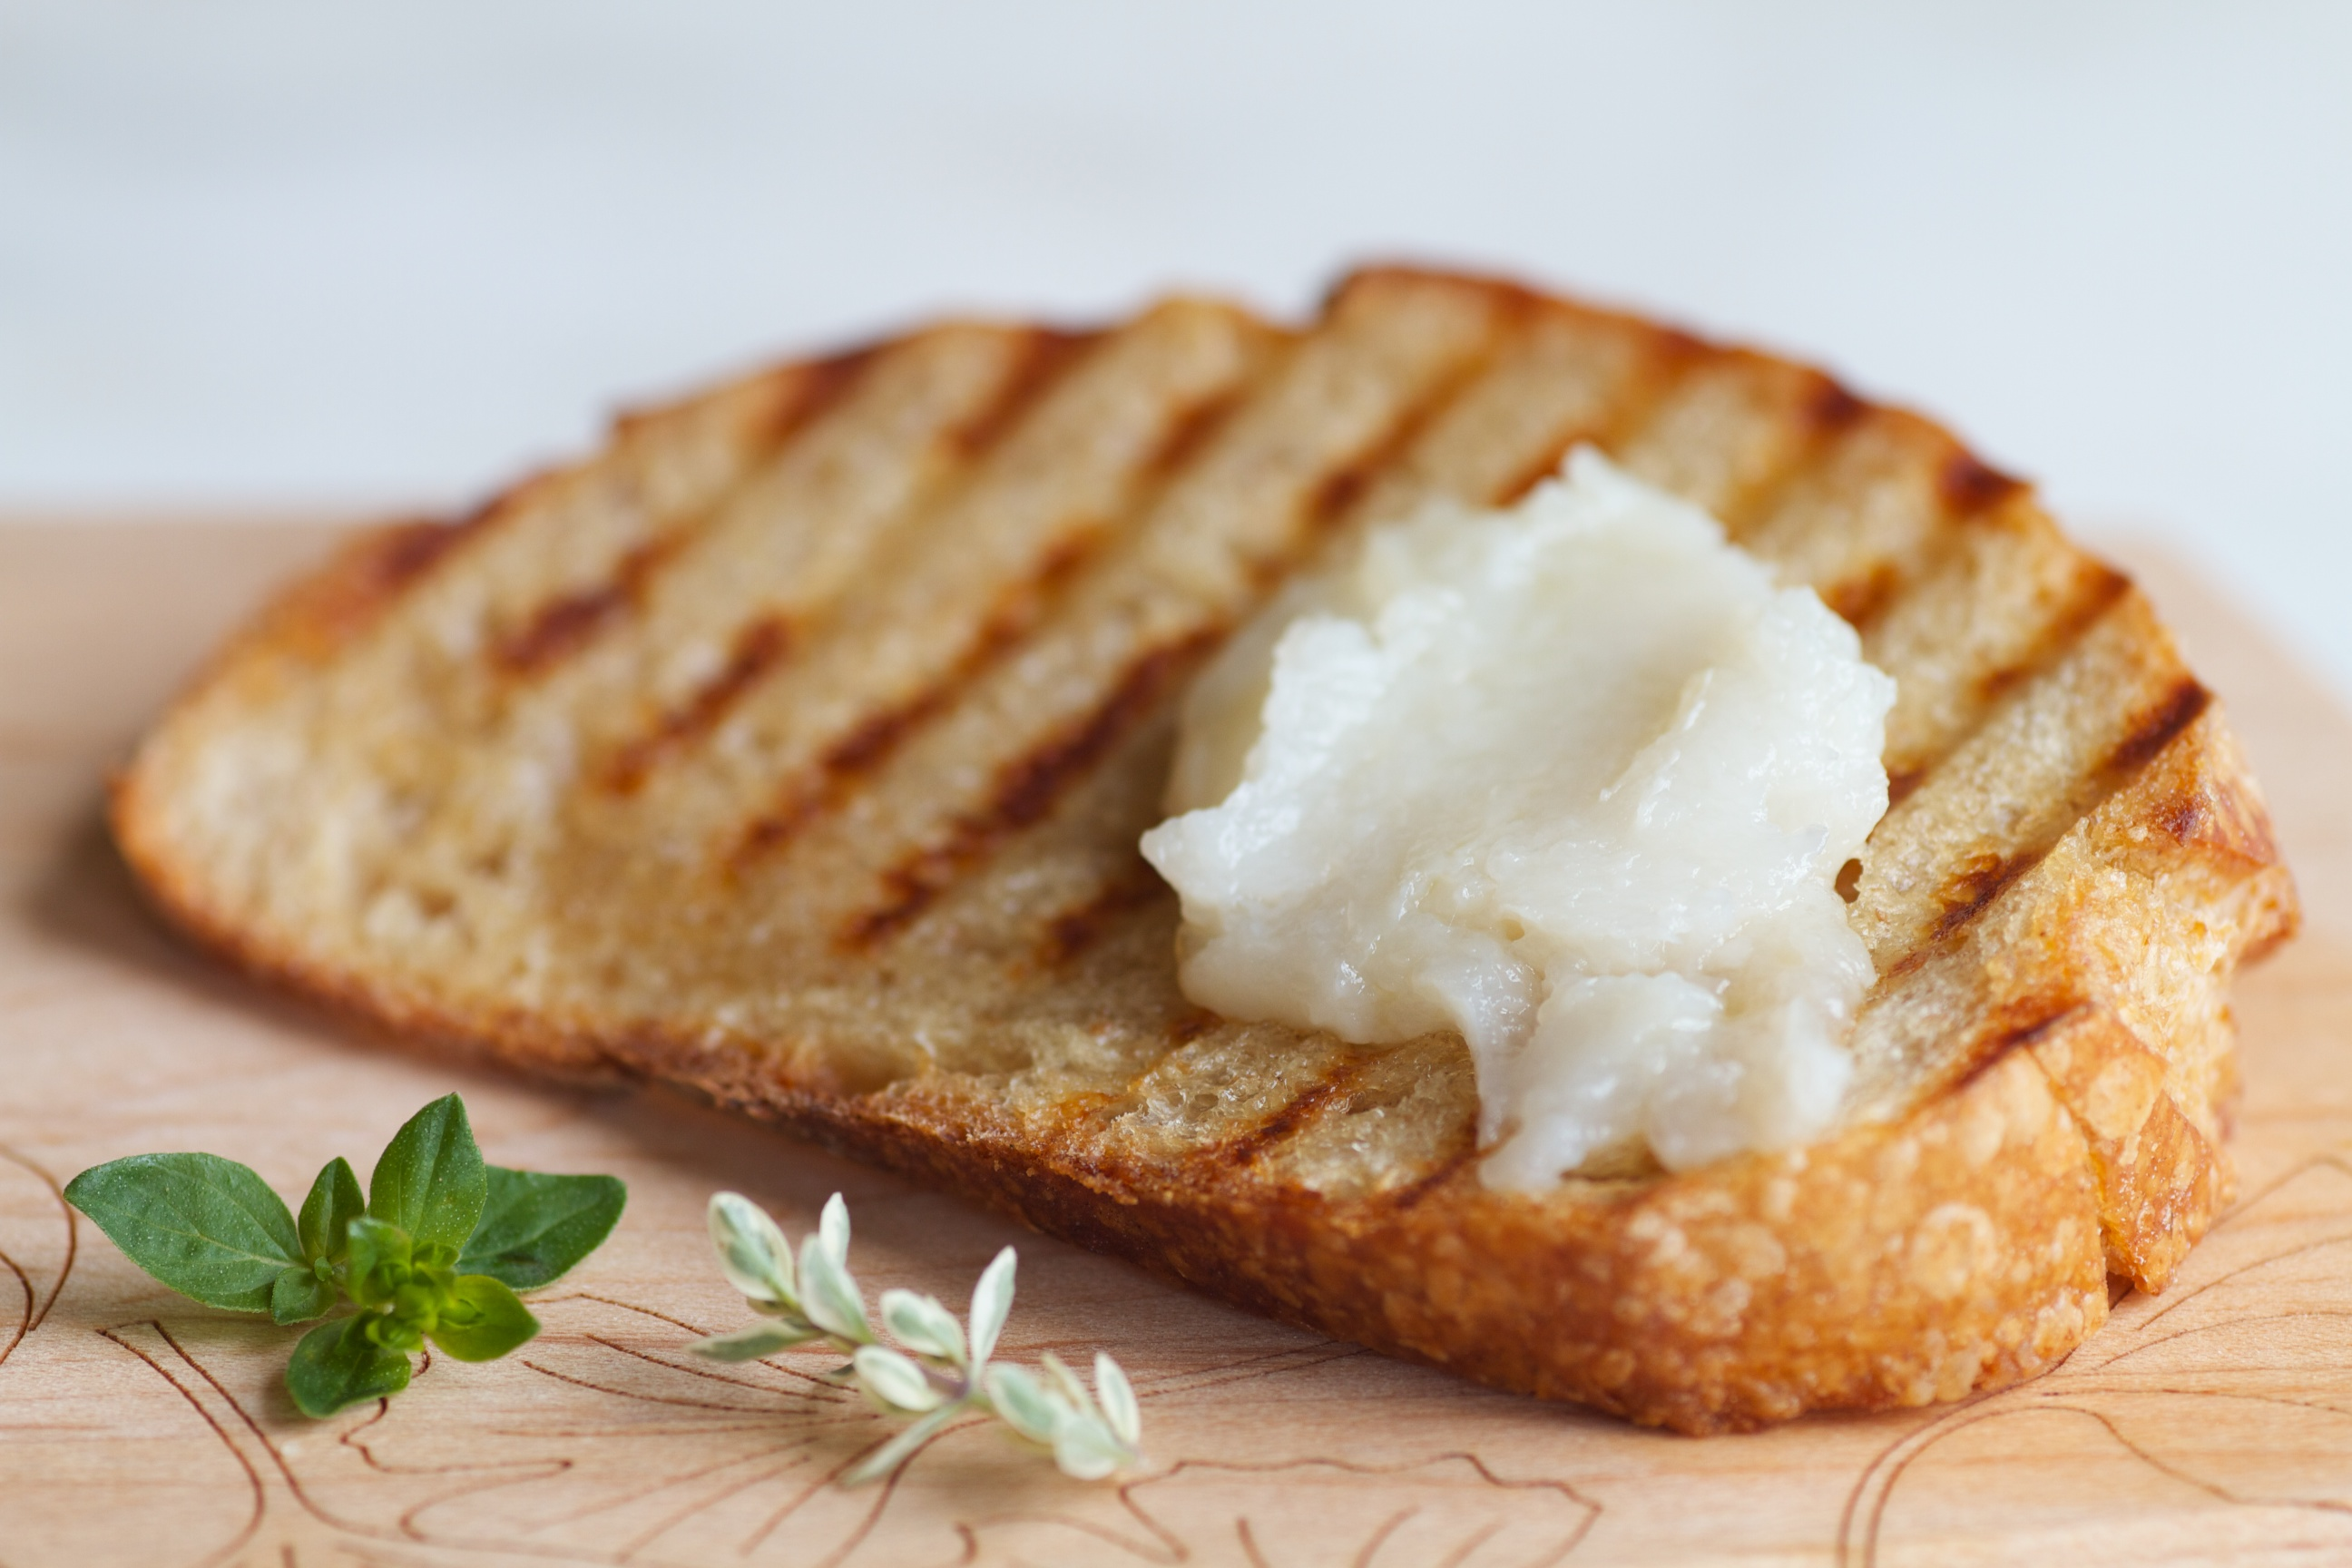 Roasted Garlic Crostonis : toast thinly sliced and olive-oiled bread ...